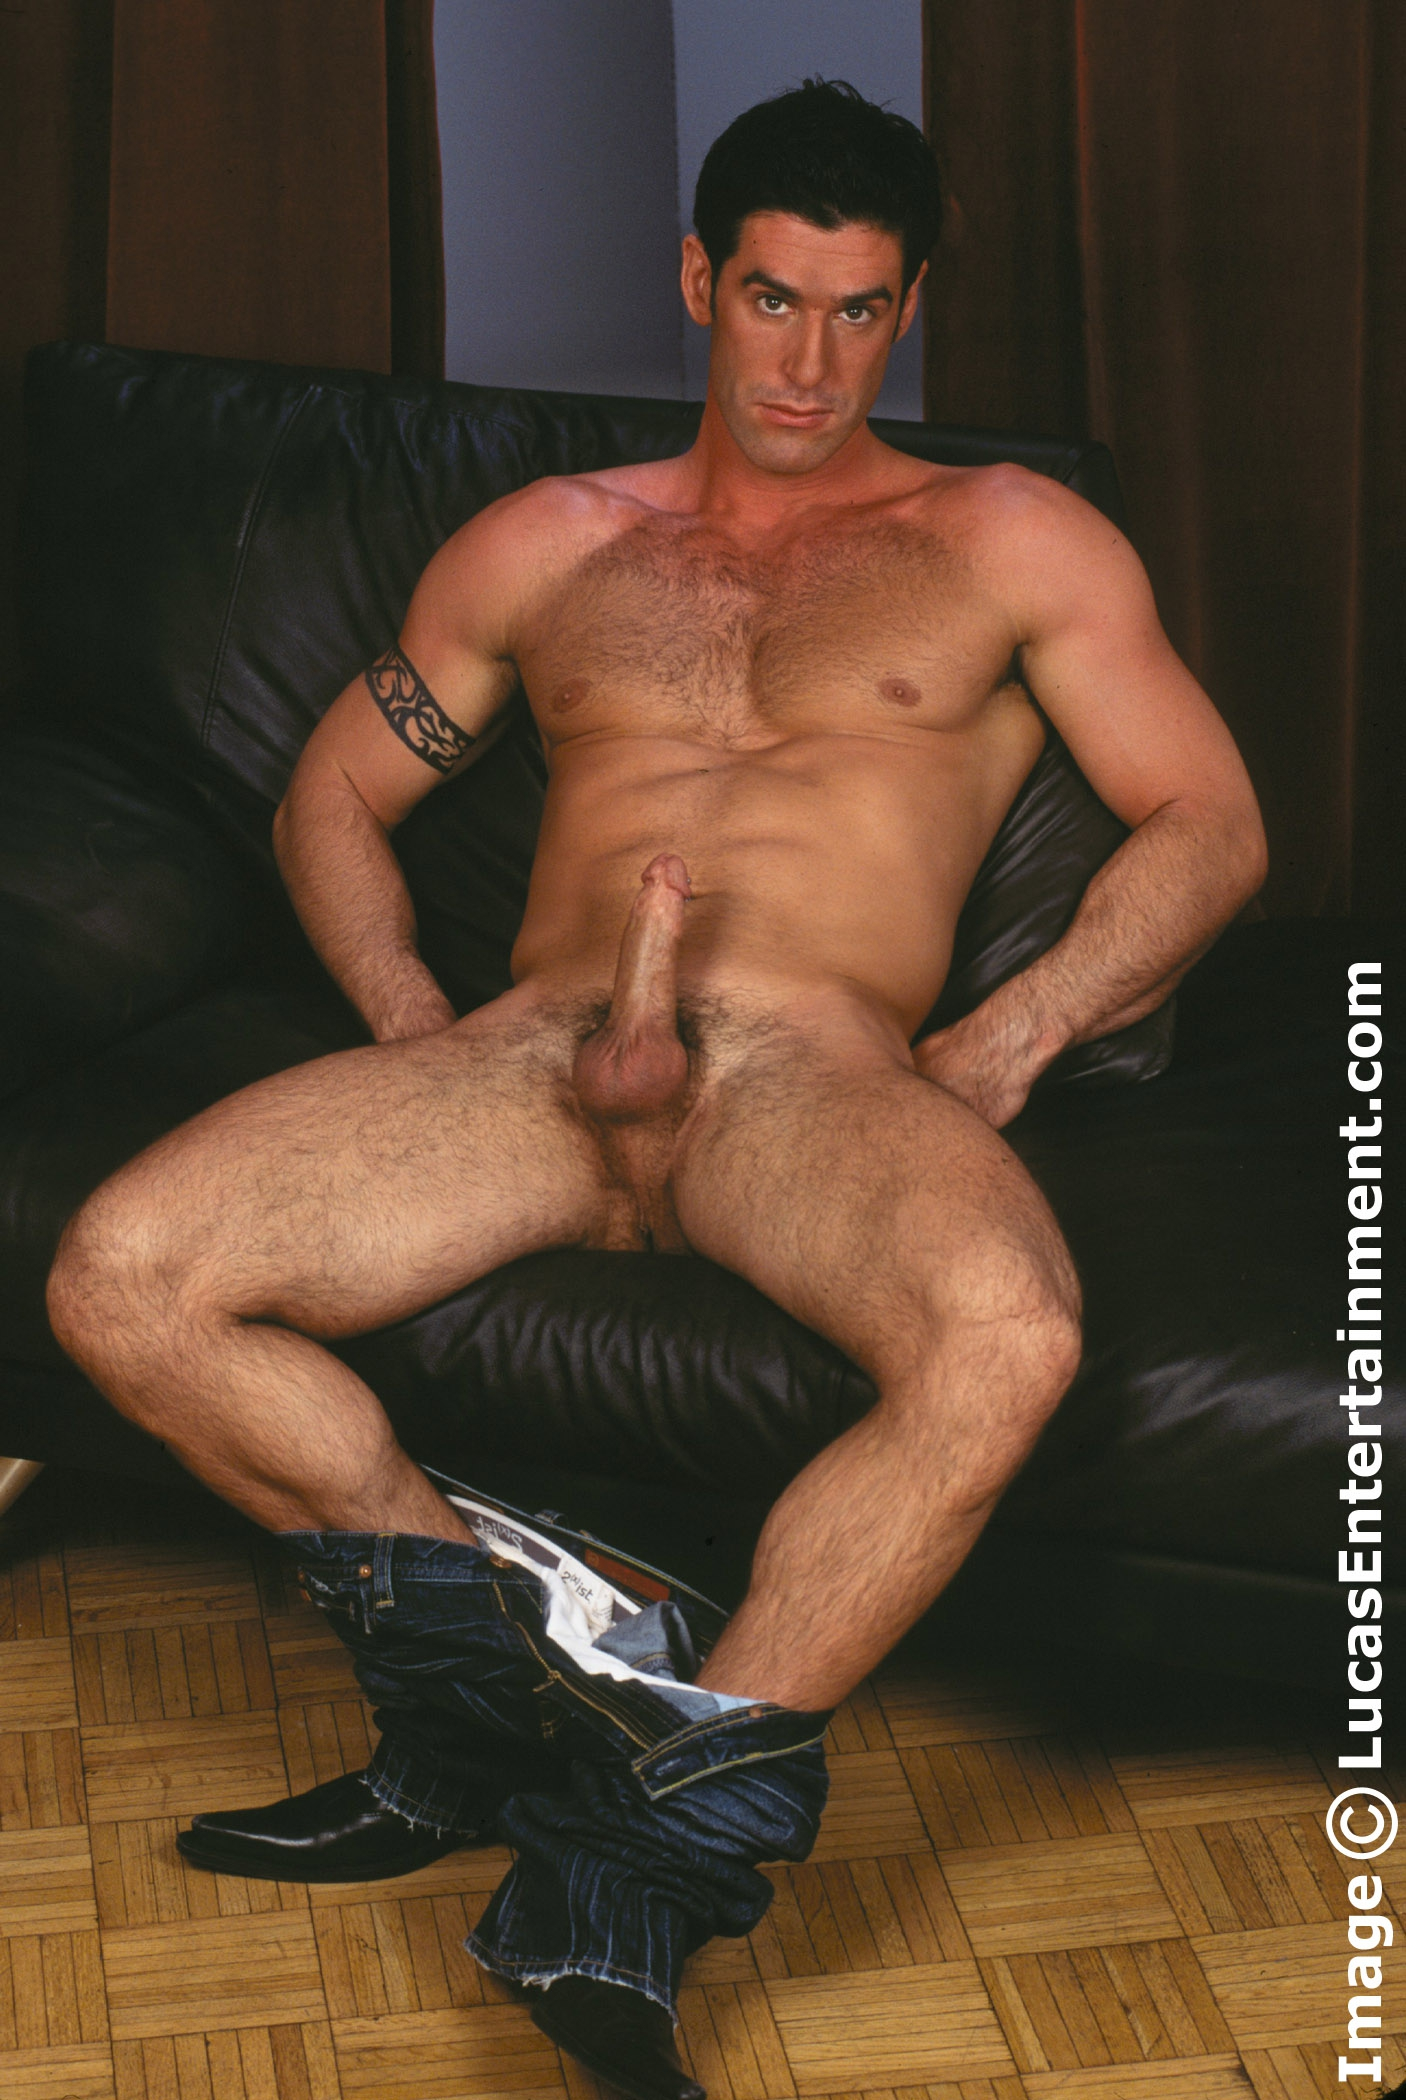 Richardblack02